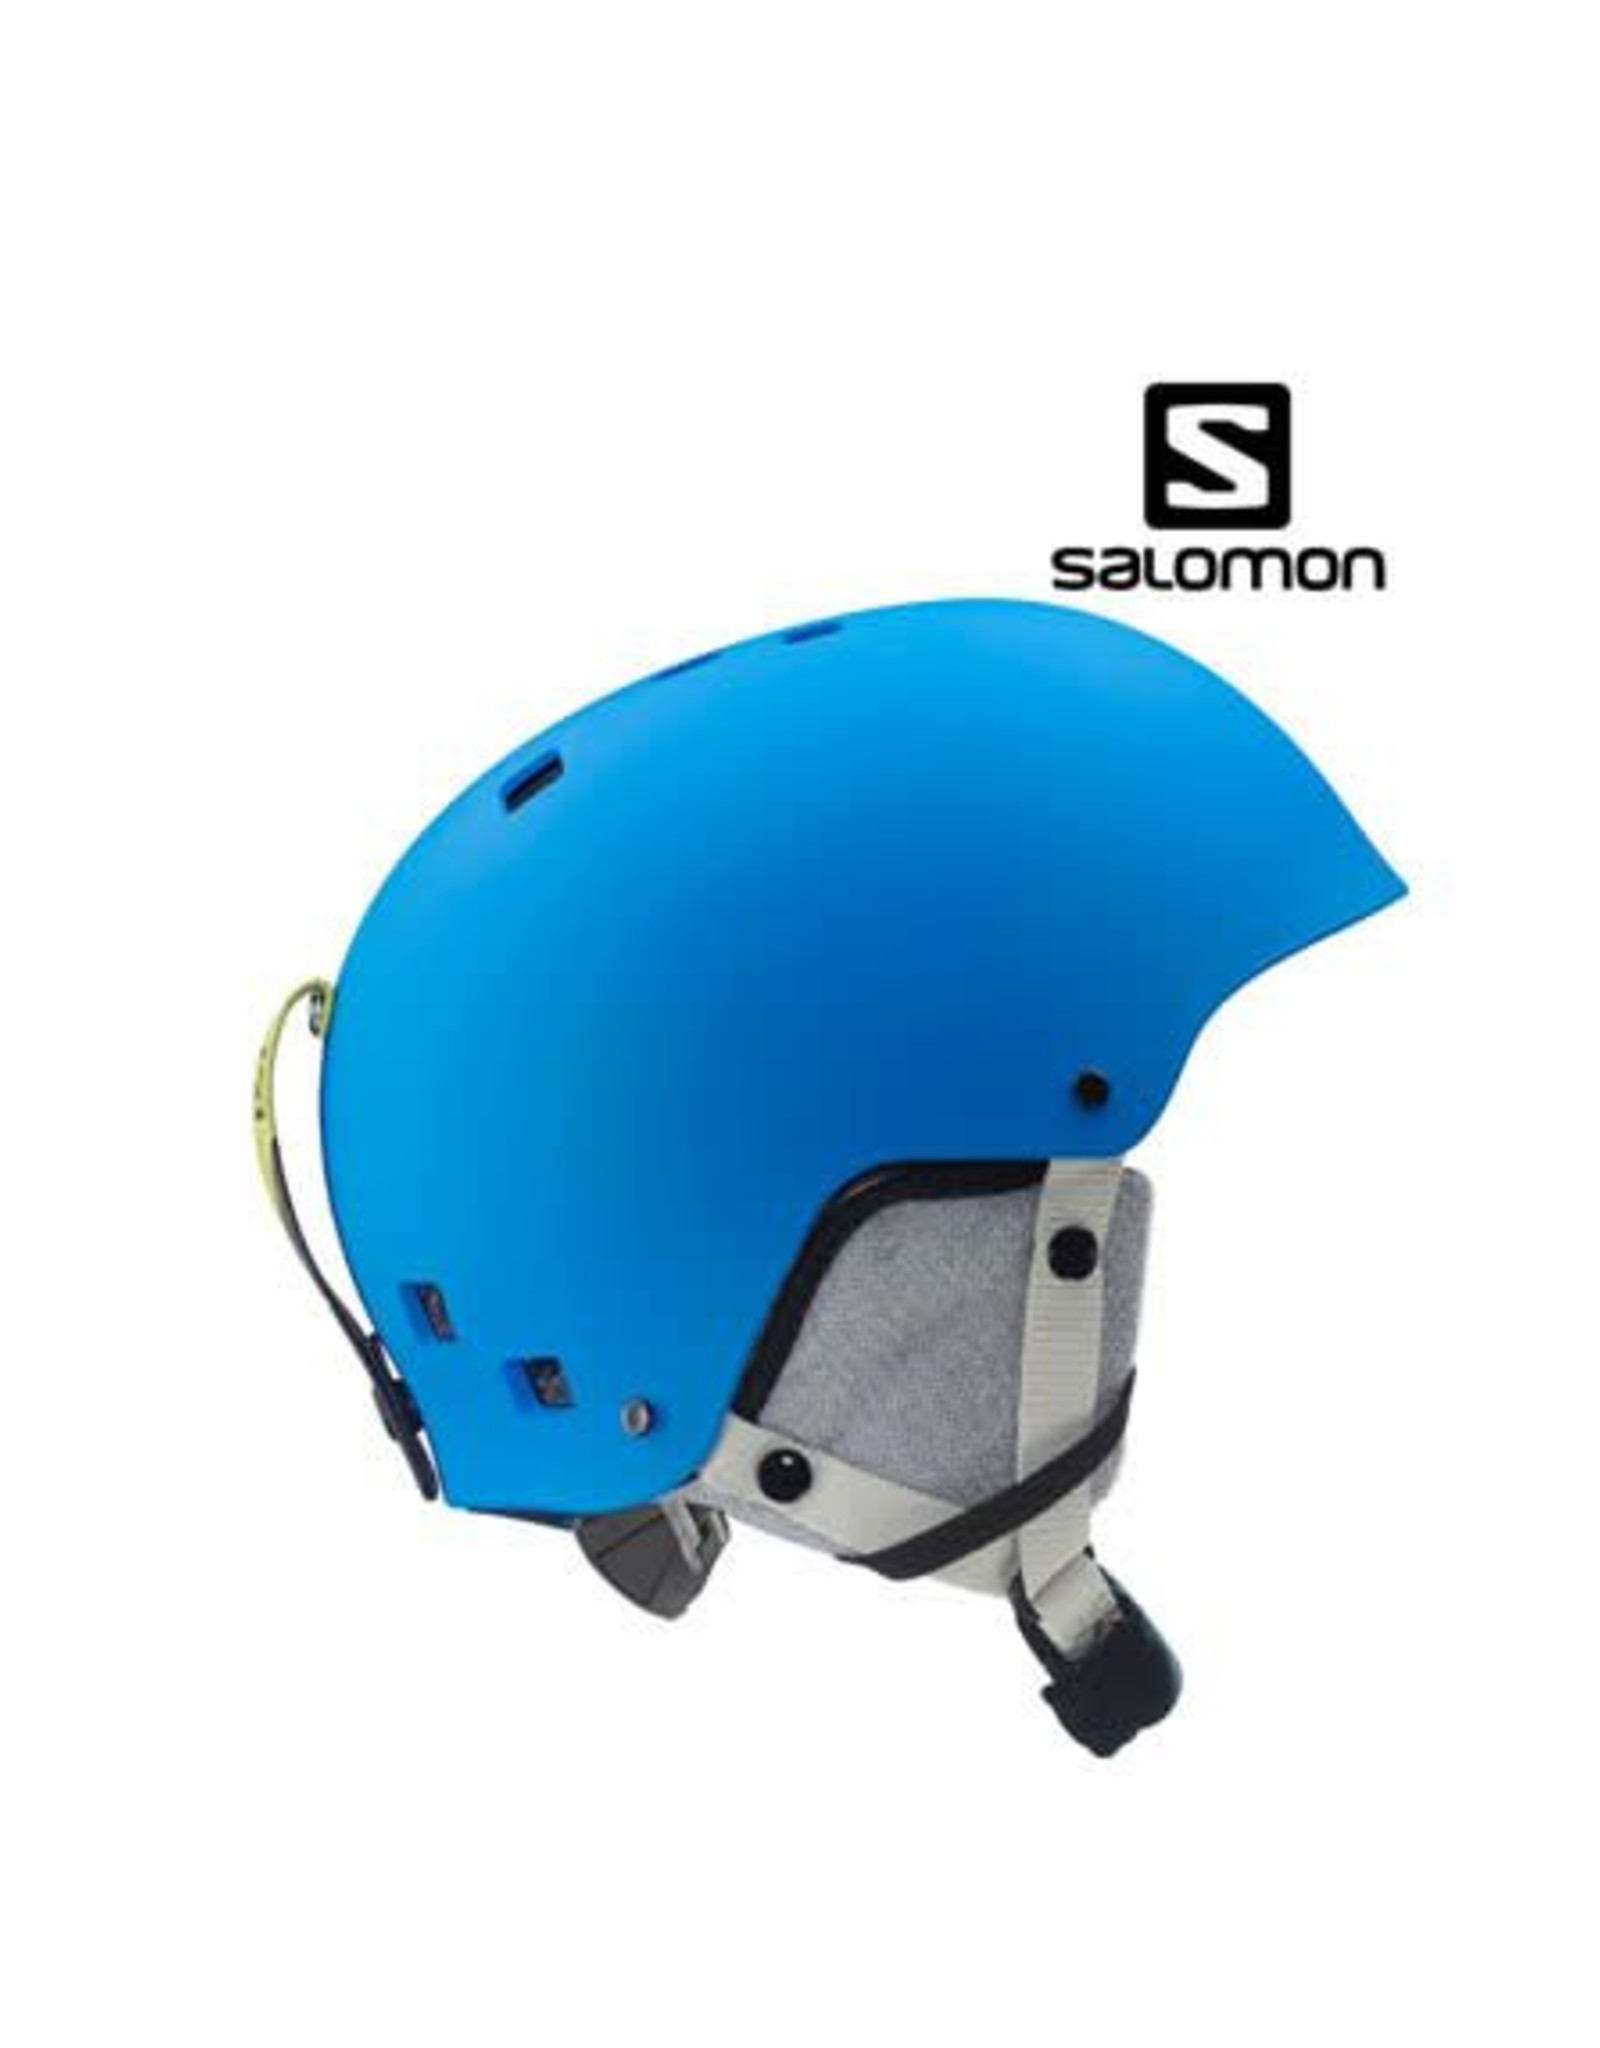 SALOMON Skihelm Salomon JIB Blue mt S (51/55)